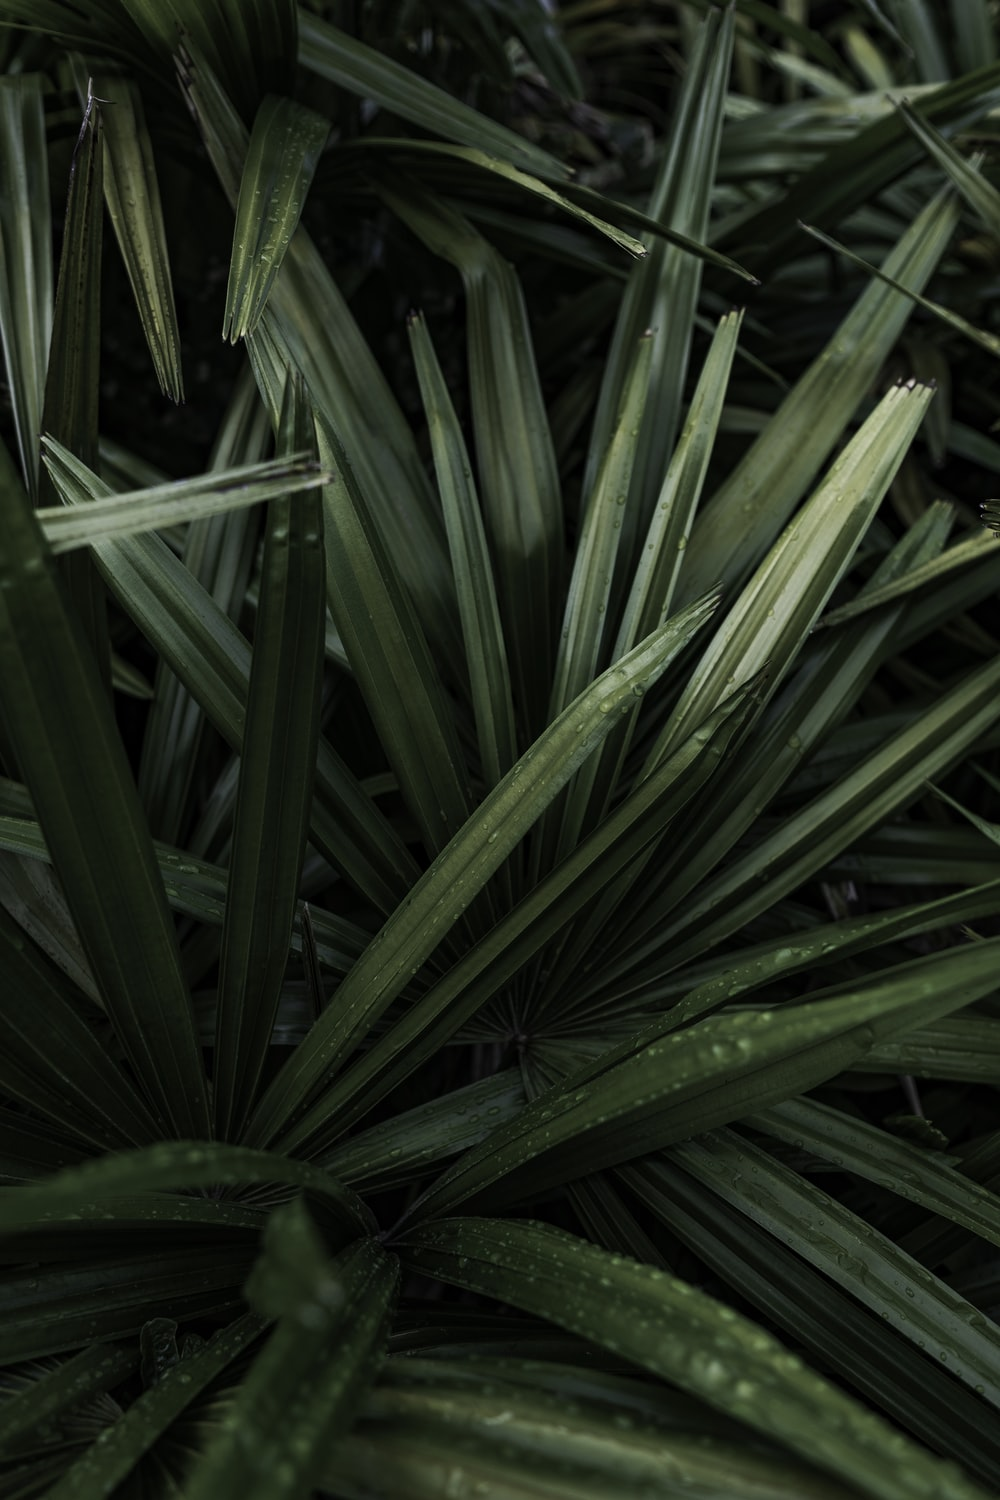 closeup photography of green linear leaf plants